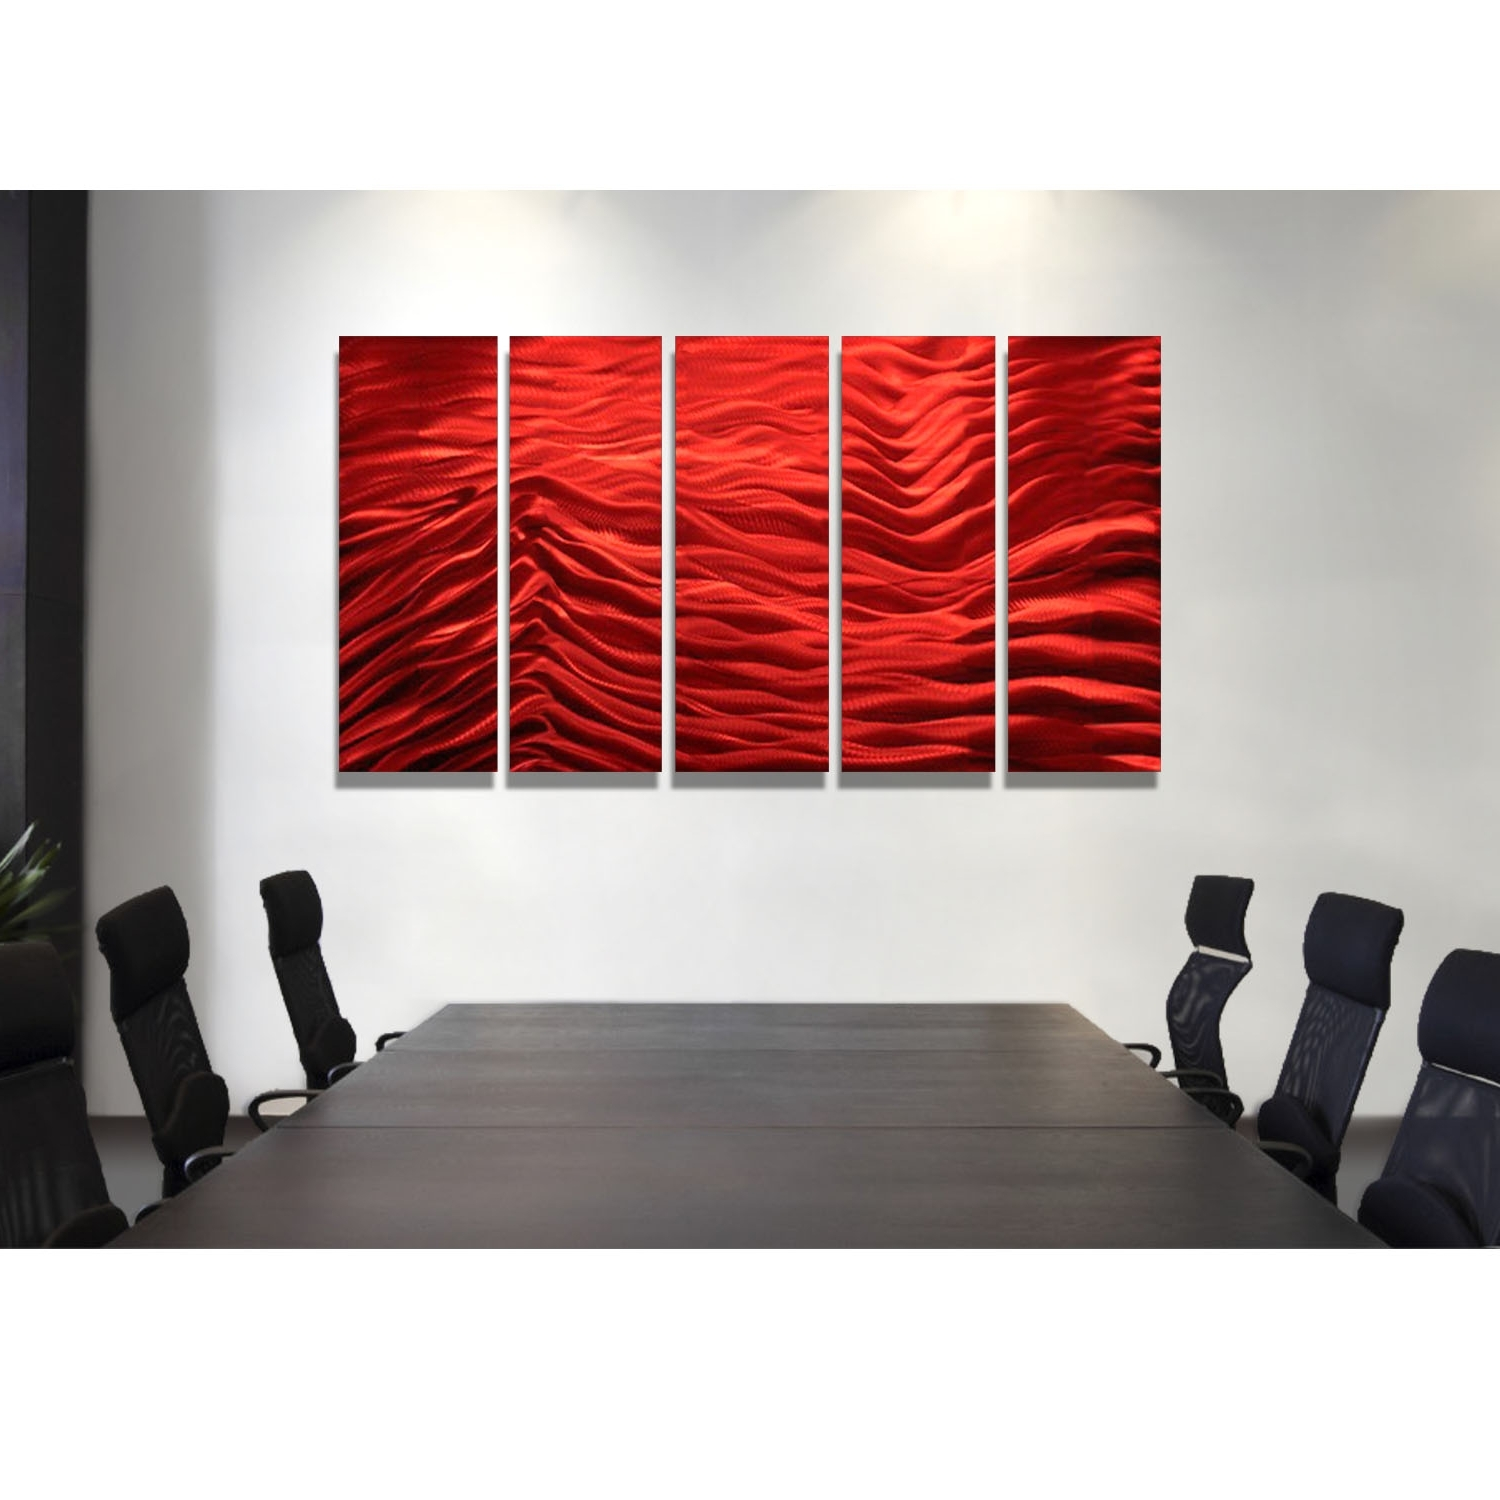 Most Popular Red Wall Art In Red Inertia – Red Metal Wall Art – 5 Panel Wall Décorjon Allen (View 7 of 15)